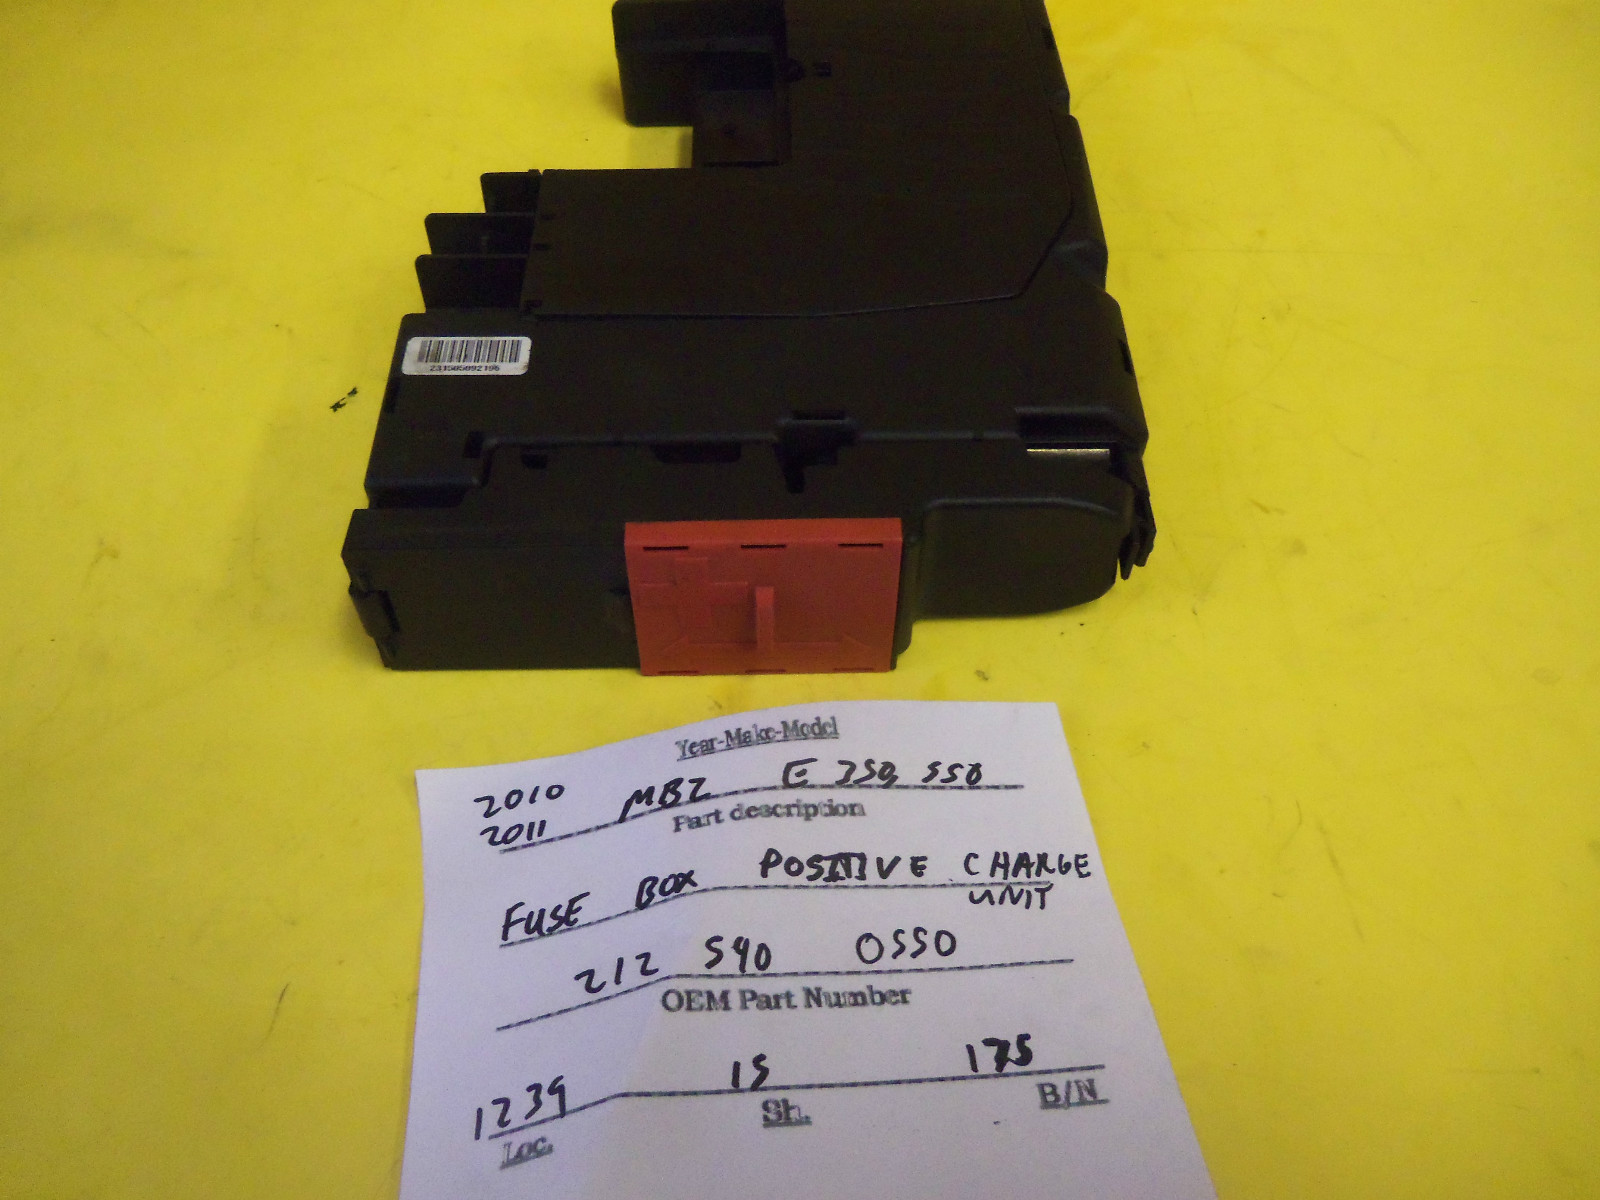 Mercedes Benz E350 550 Fuse Box And Positive Charge Unit  Used Auto Parts